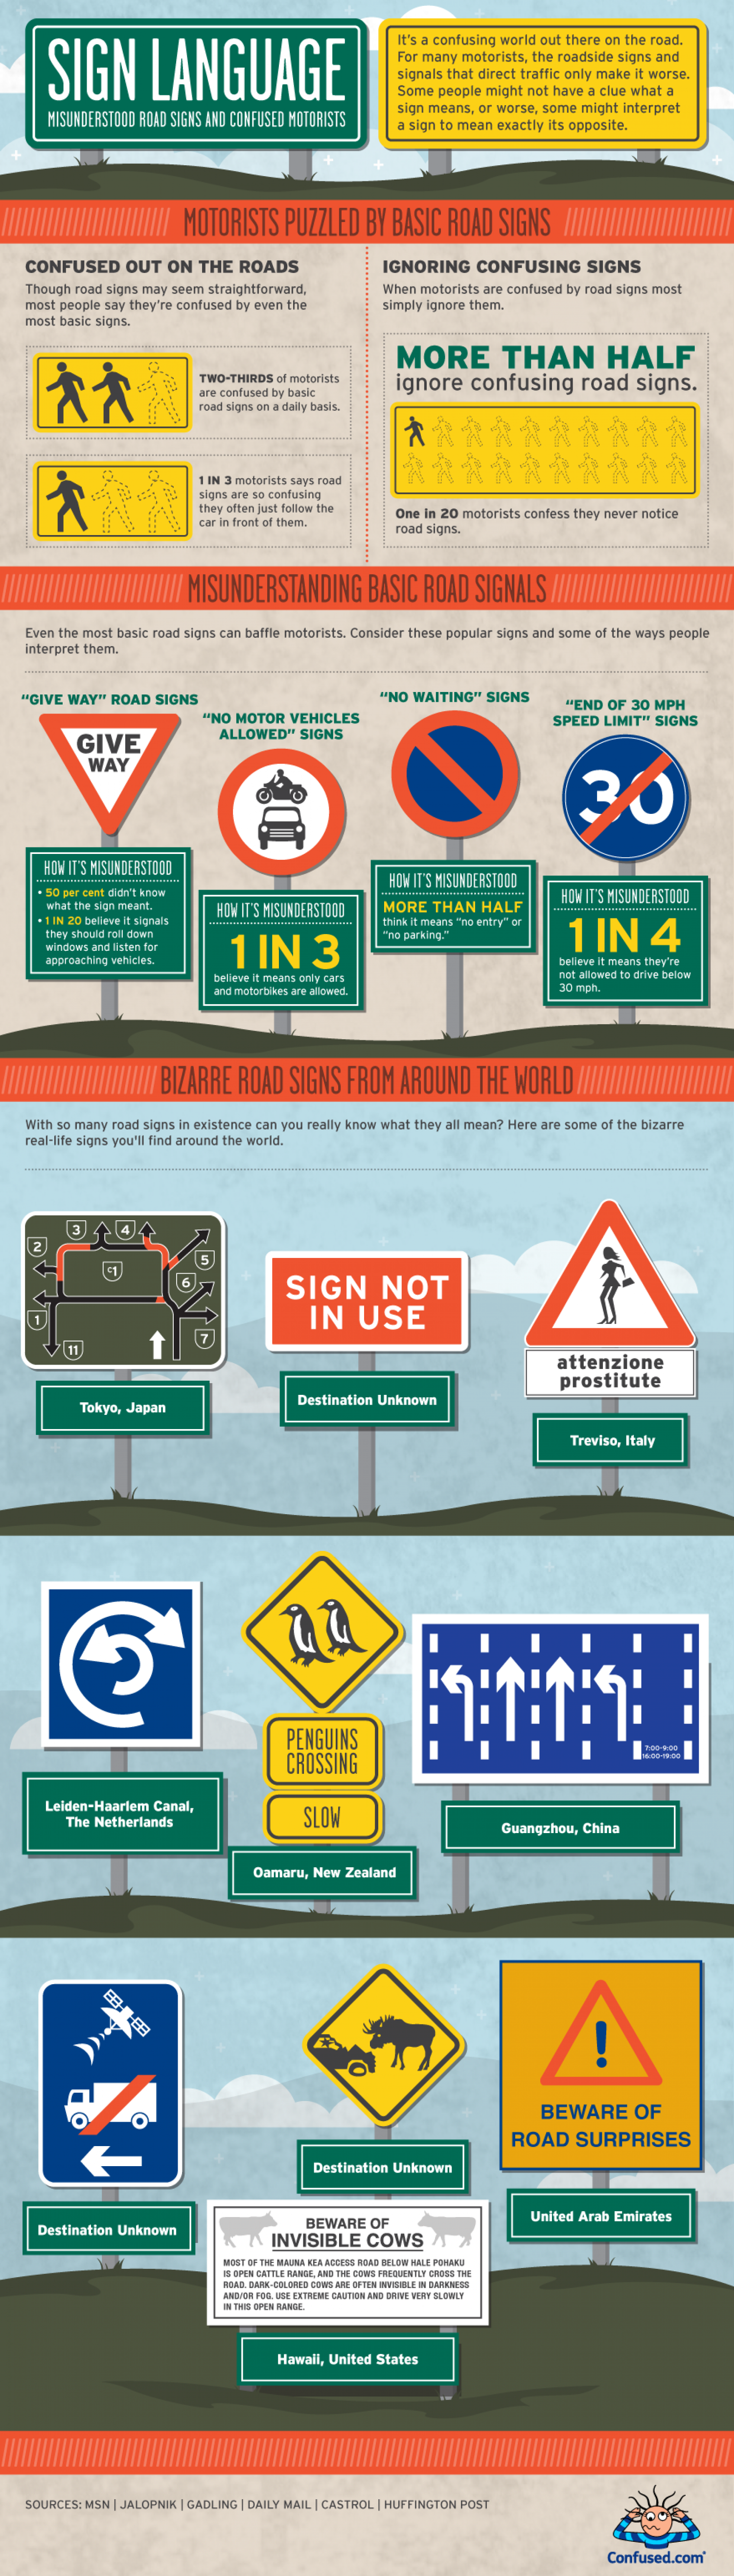 Misunderstood Road Signs and Confused Motorists Infographic